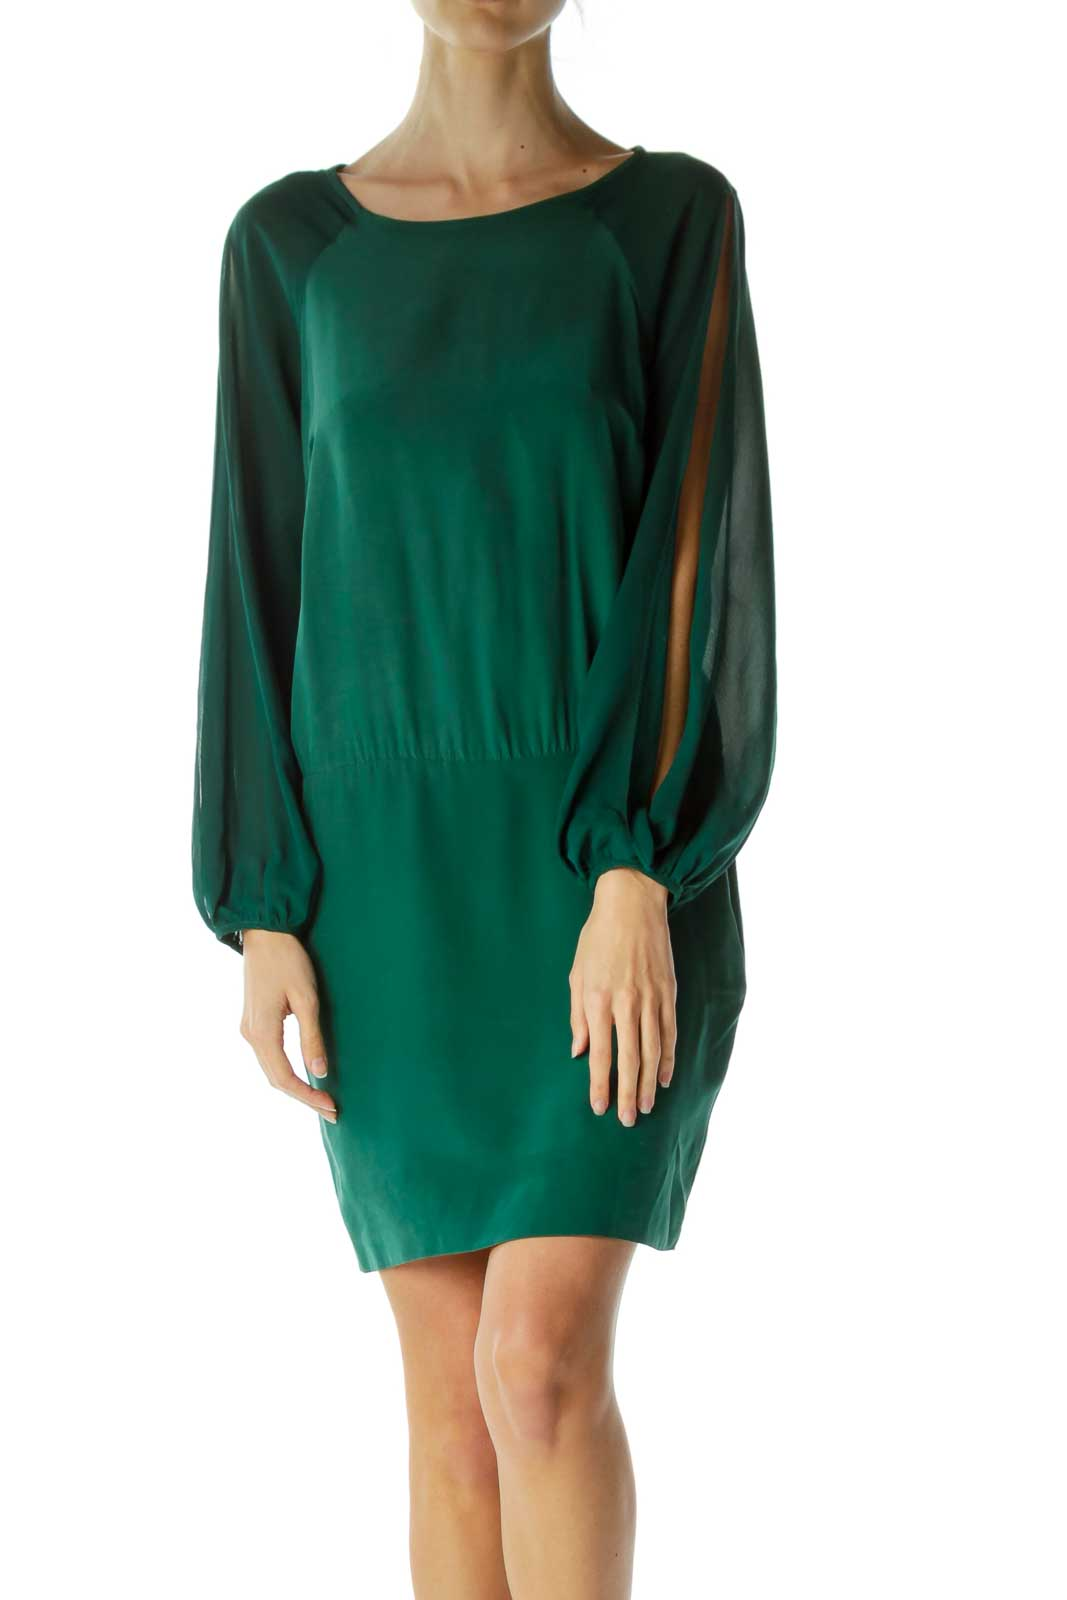 Green Long Sleeve Cut-Out Cocktail Dress Front